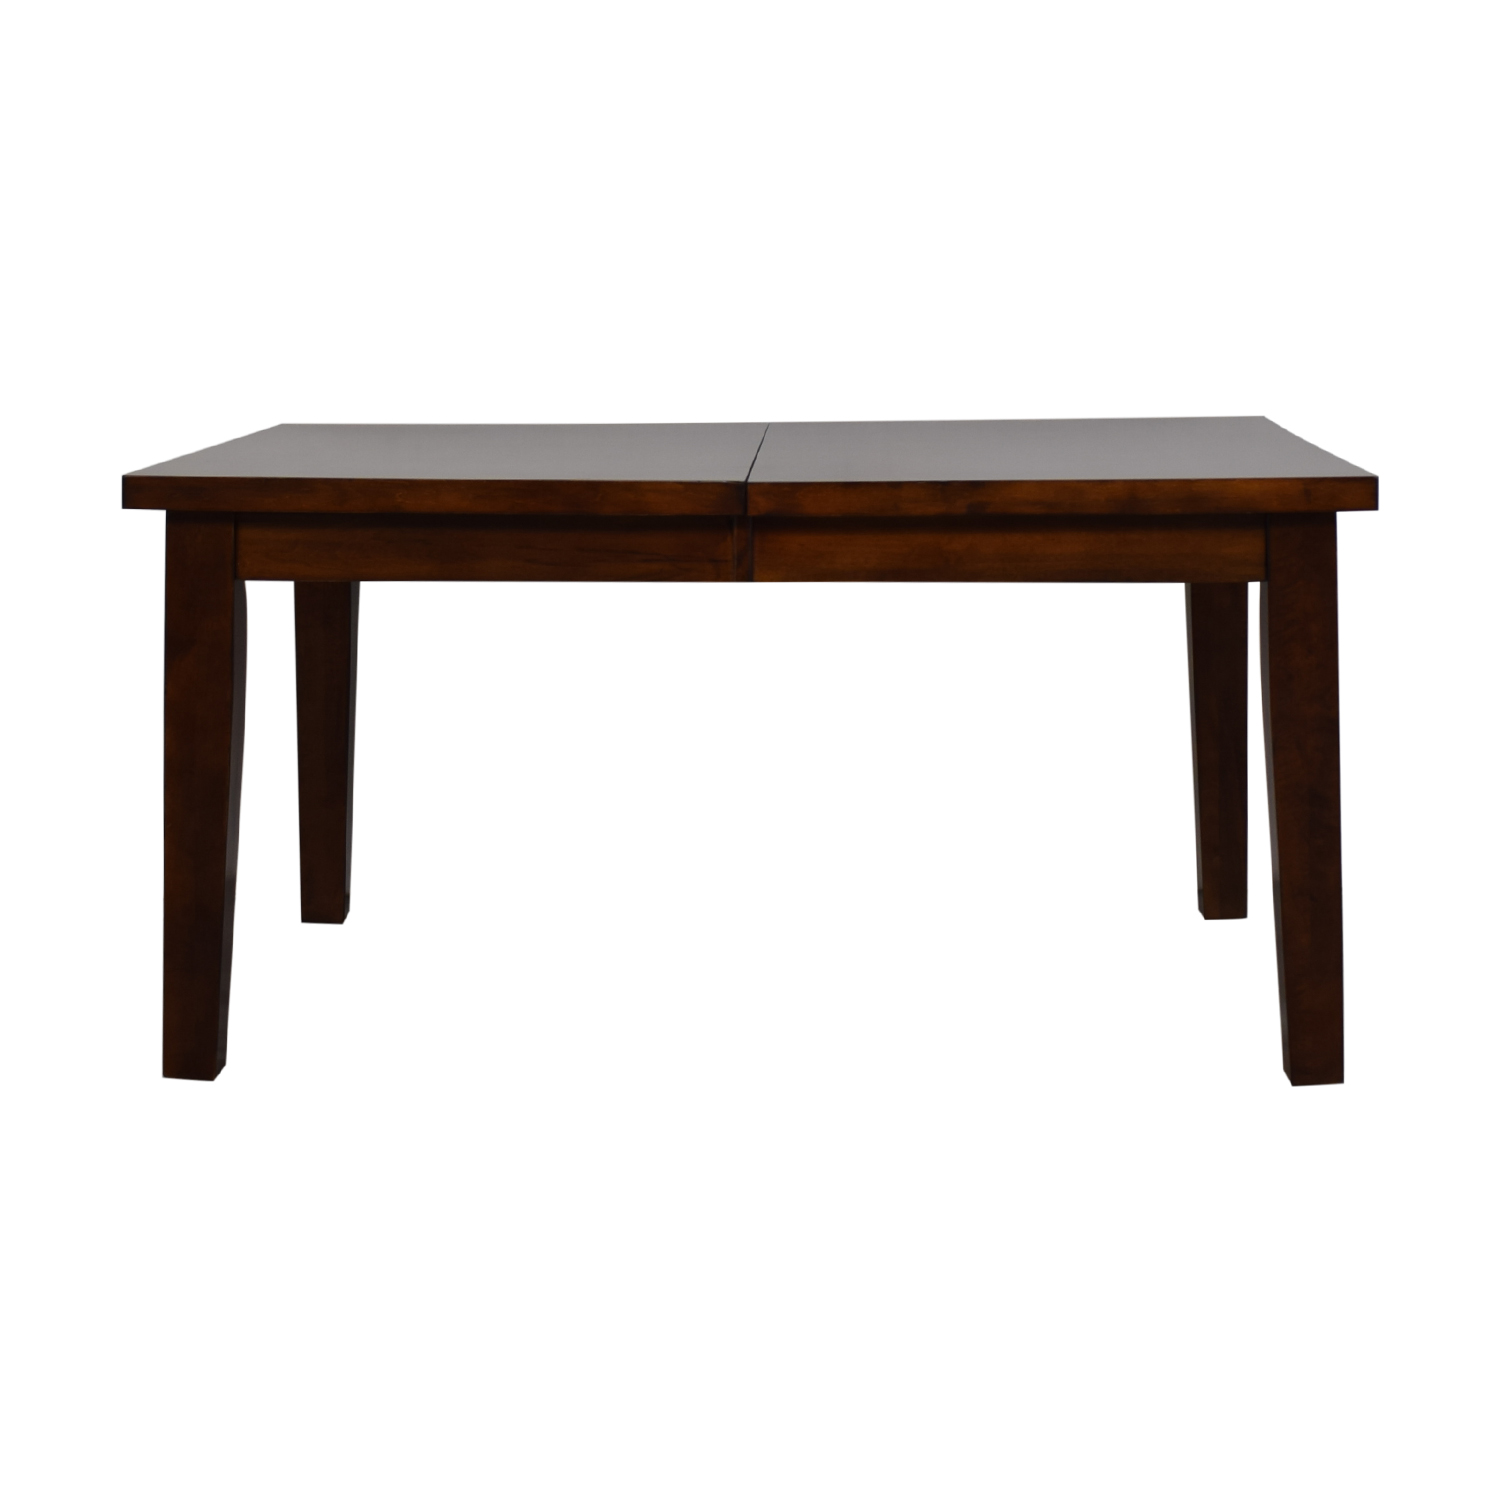 Furniture of America Furniture of America Dinner Table dimensions